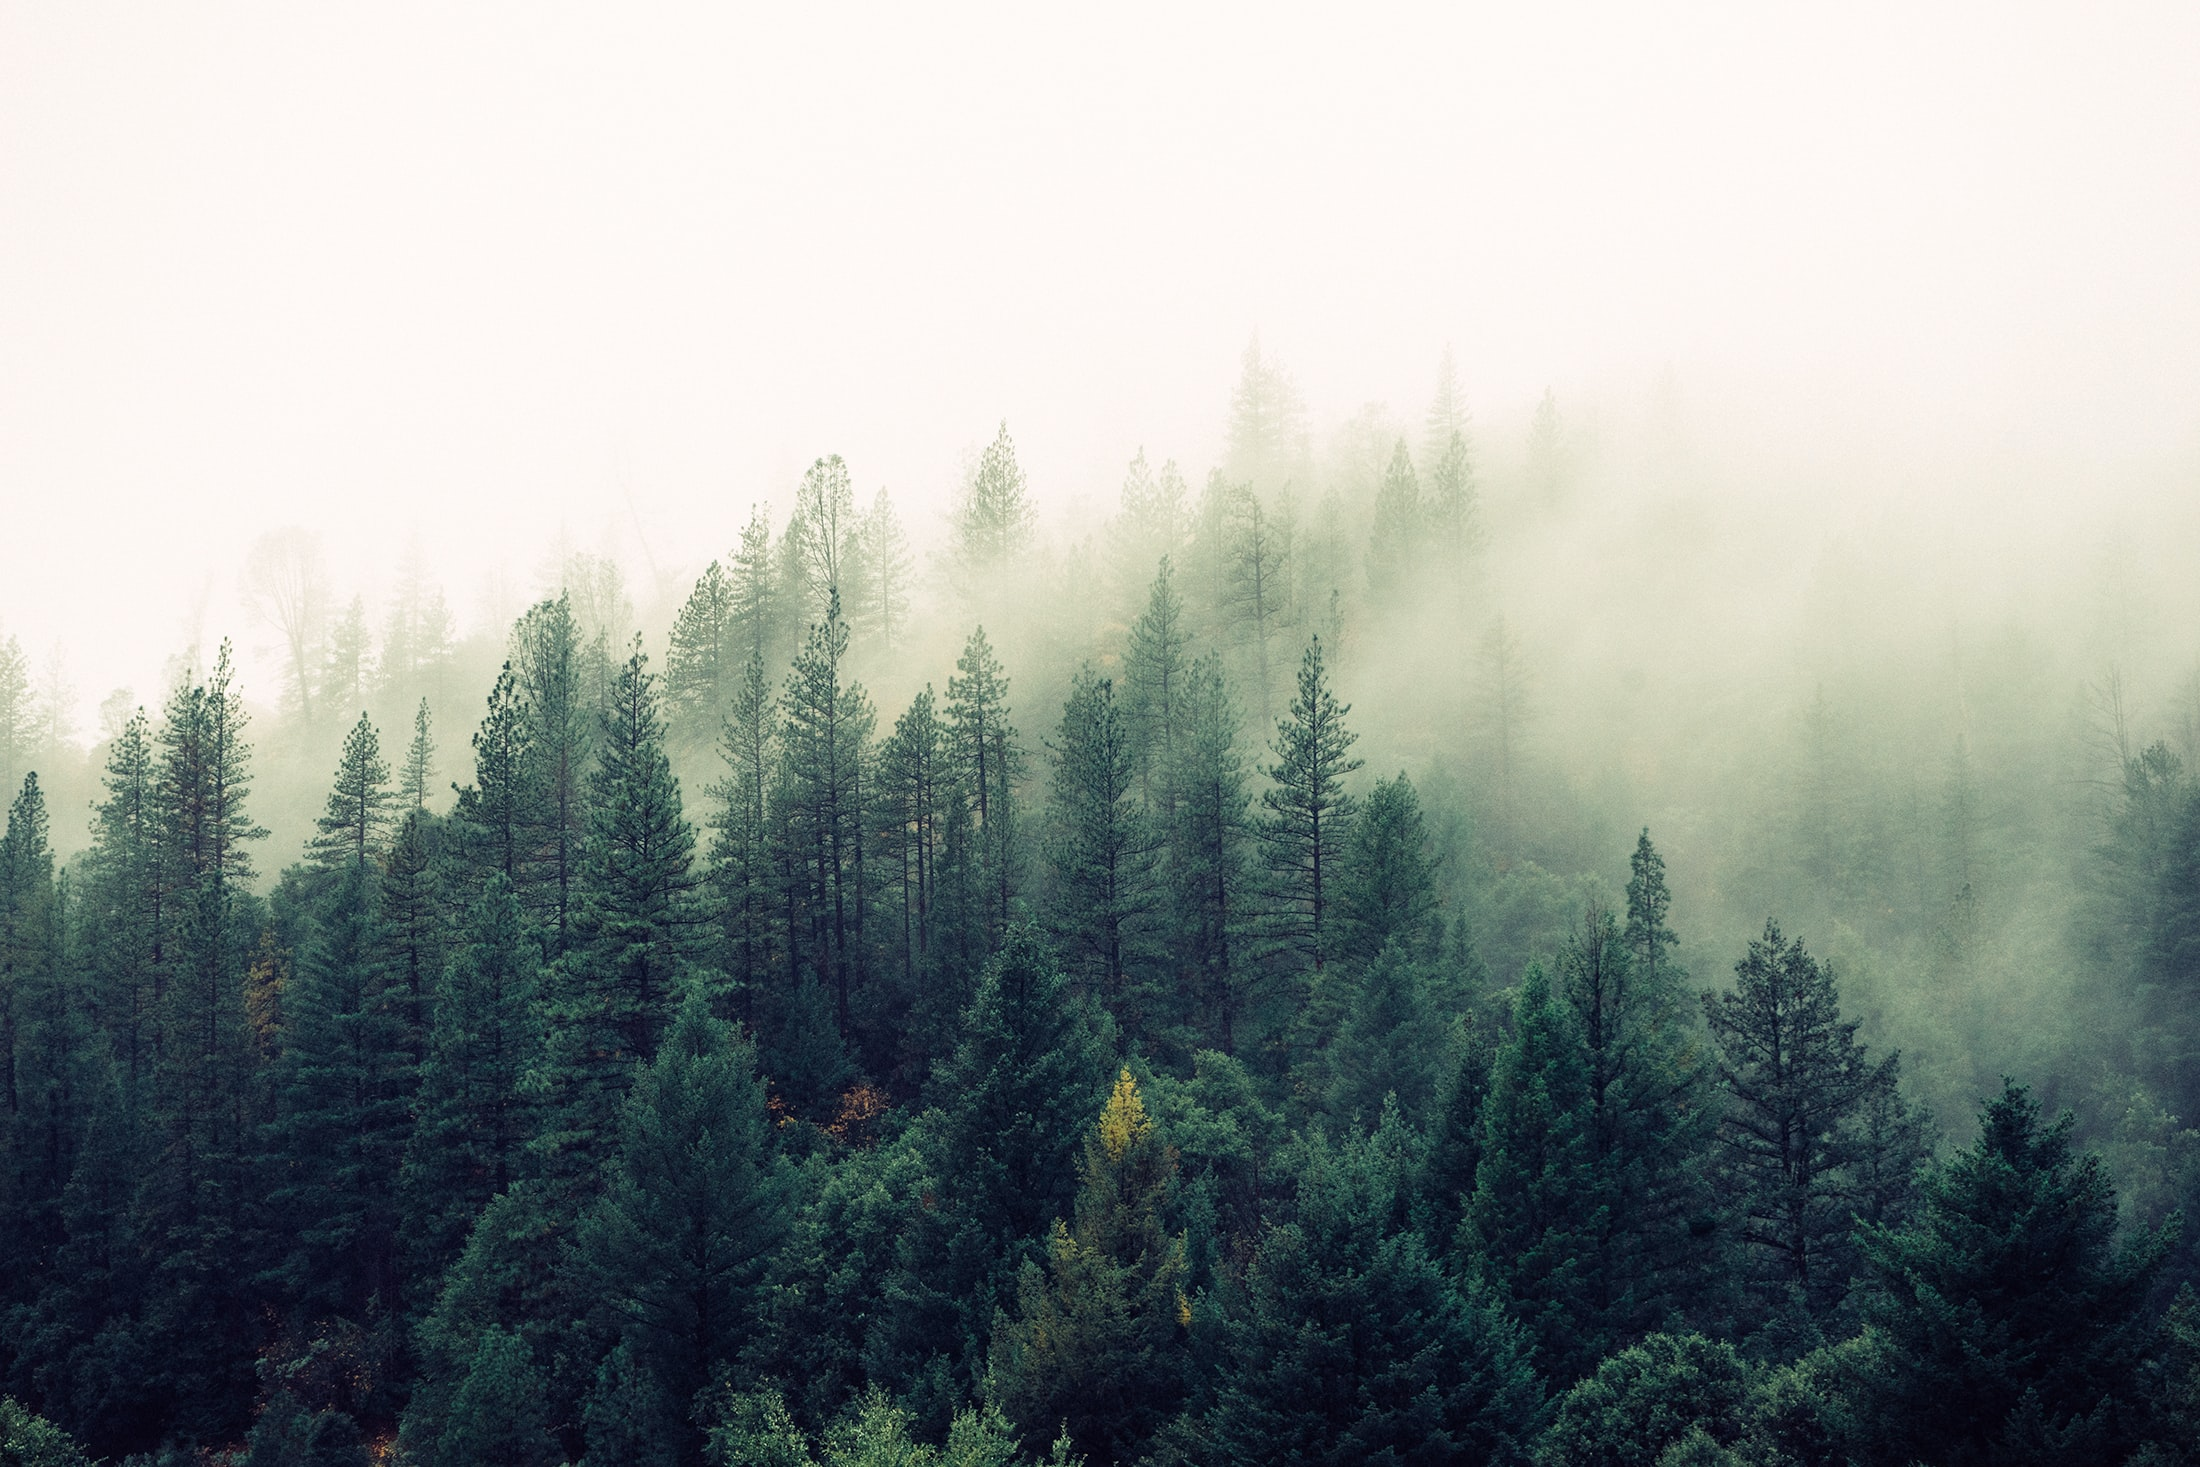 A pine forest shrouded in a dense fog descending from above